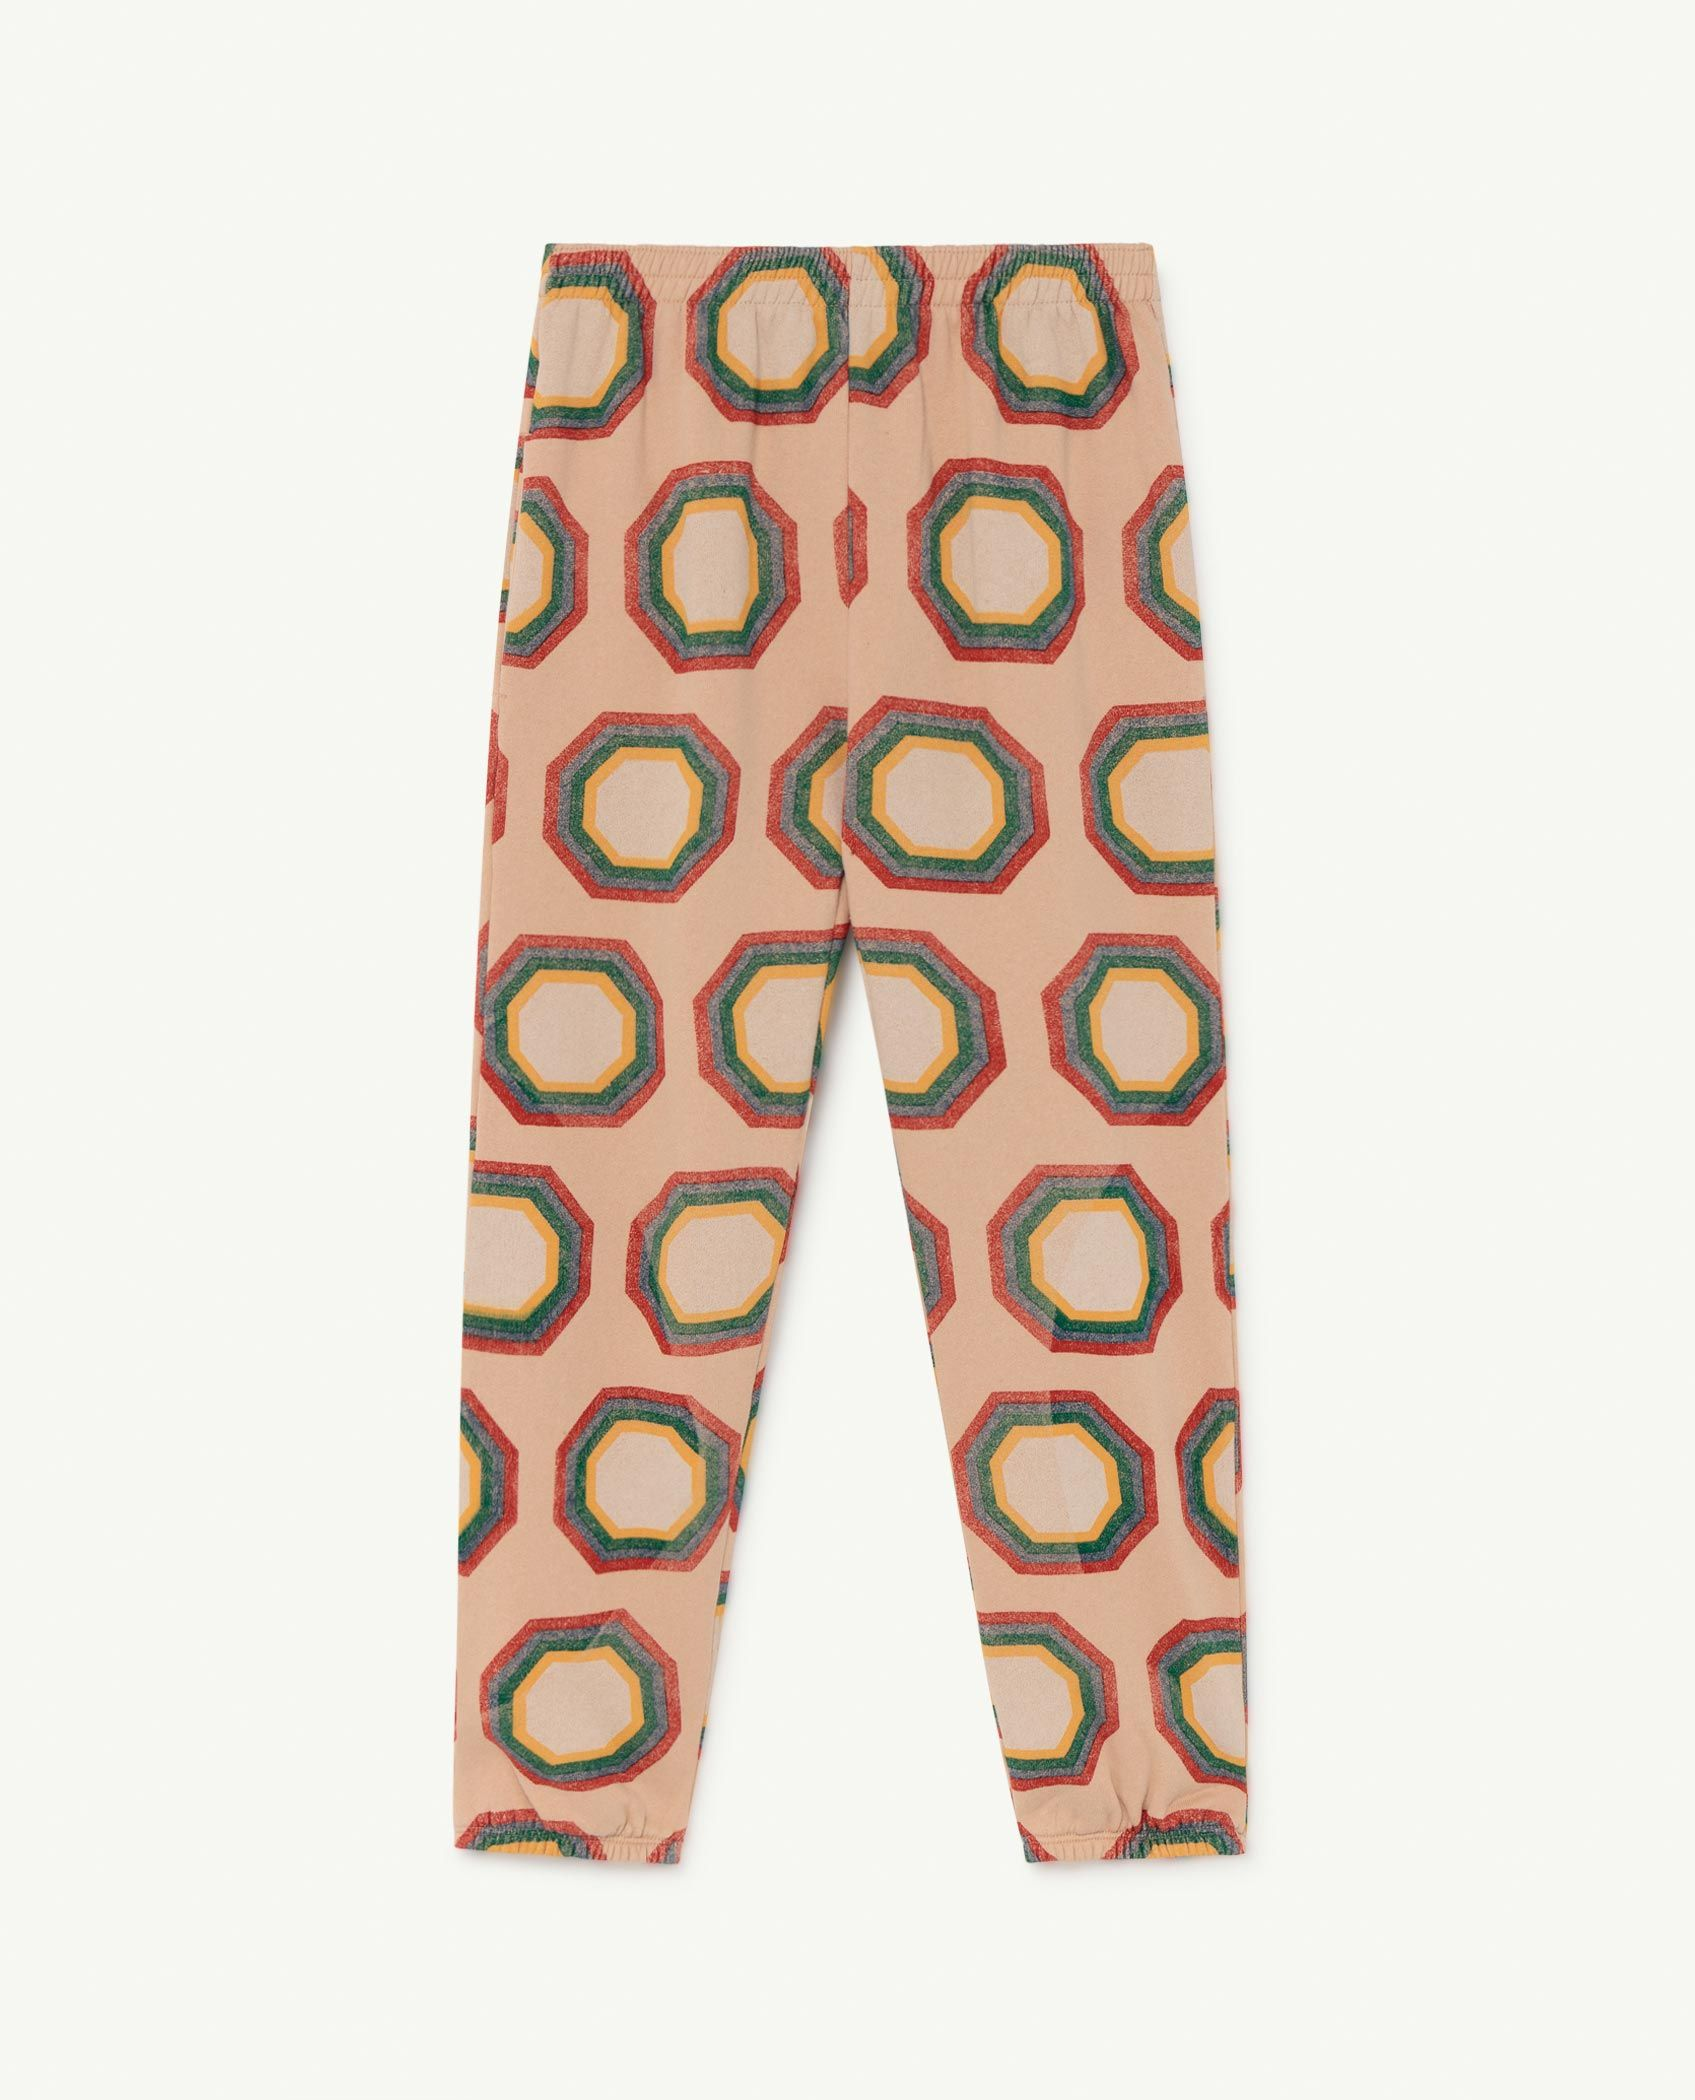 Soft Pink Octagon Dromedary Trousers img-1